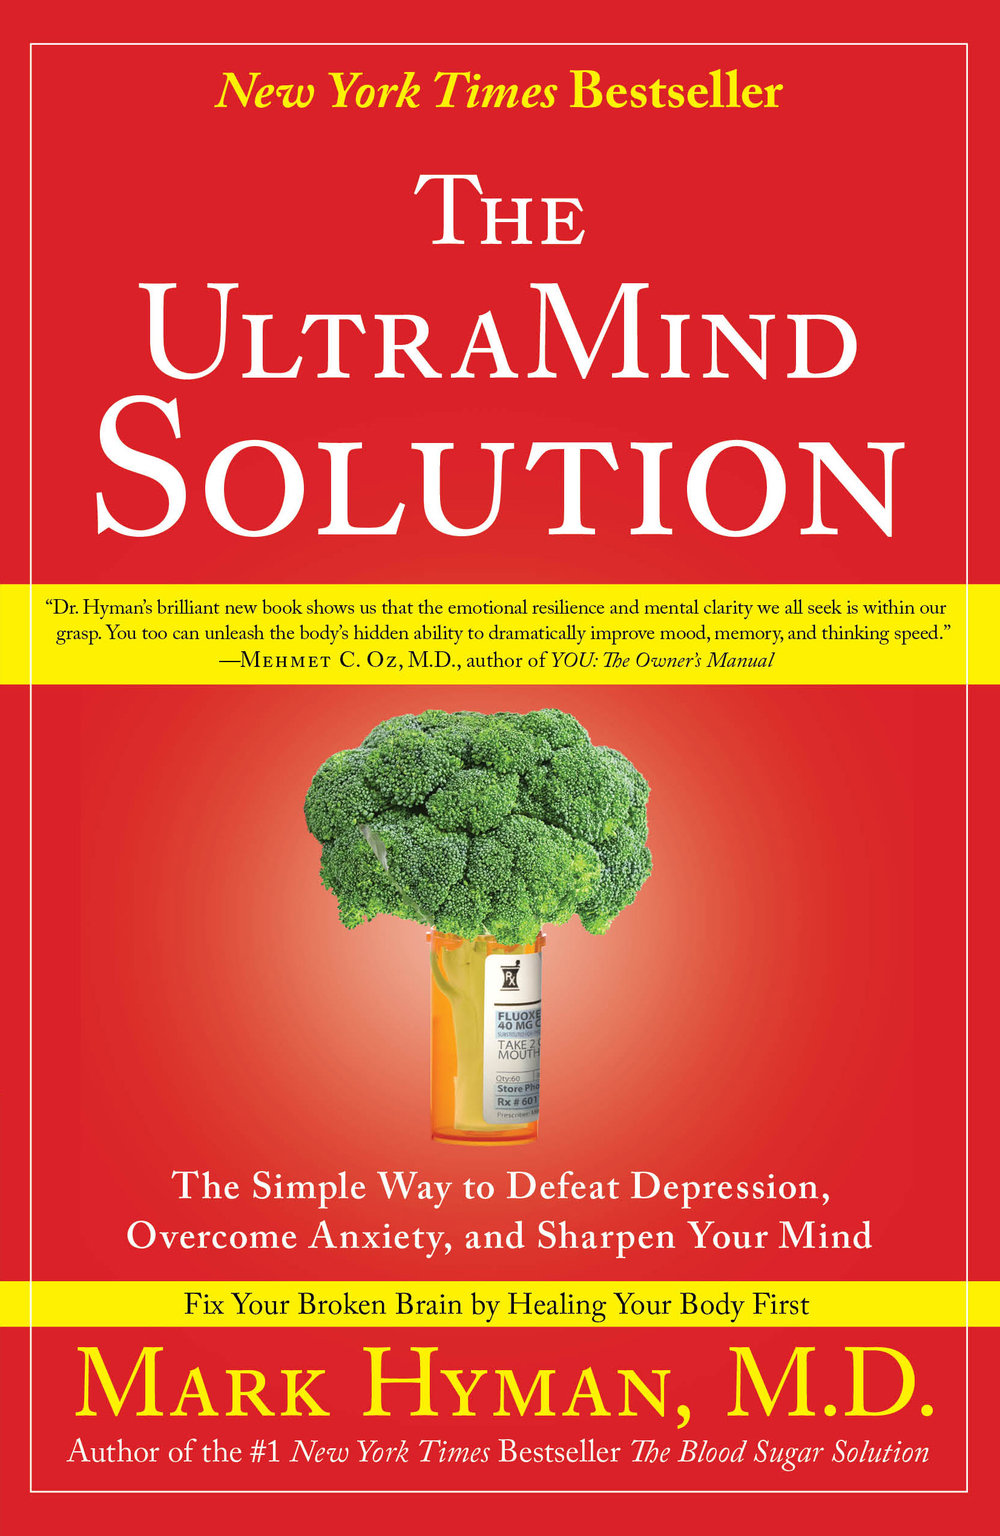 The Ultramind Solution by Dr. Mark Hyman